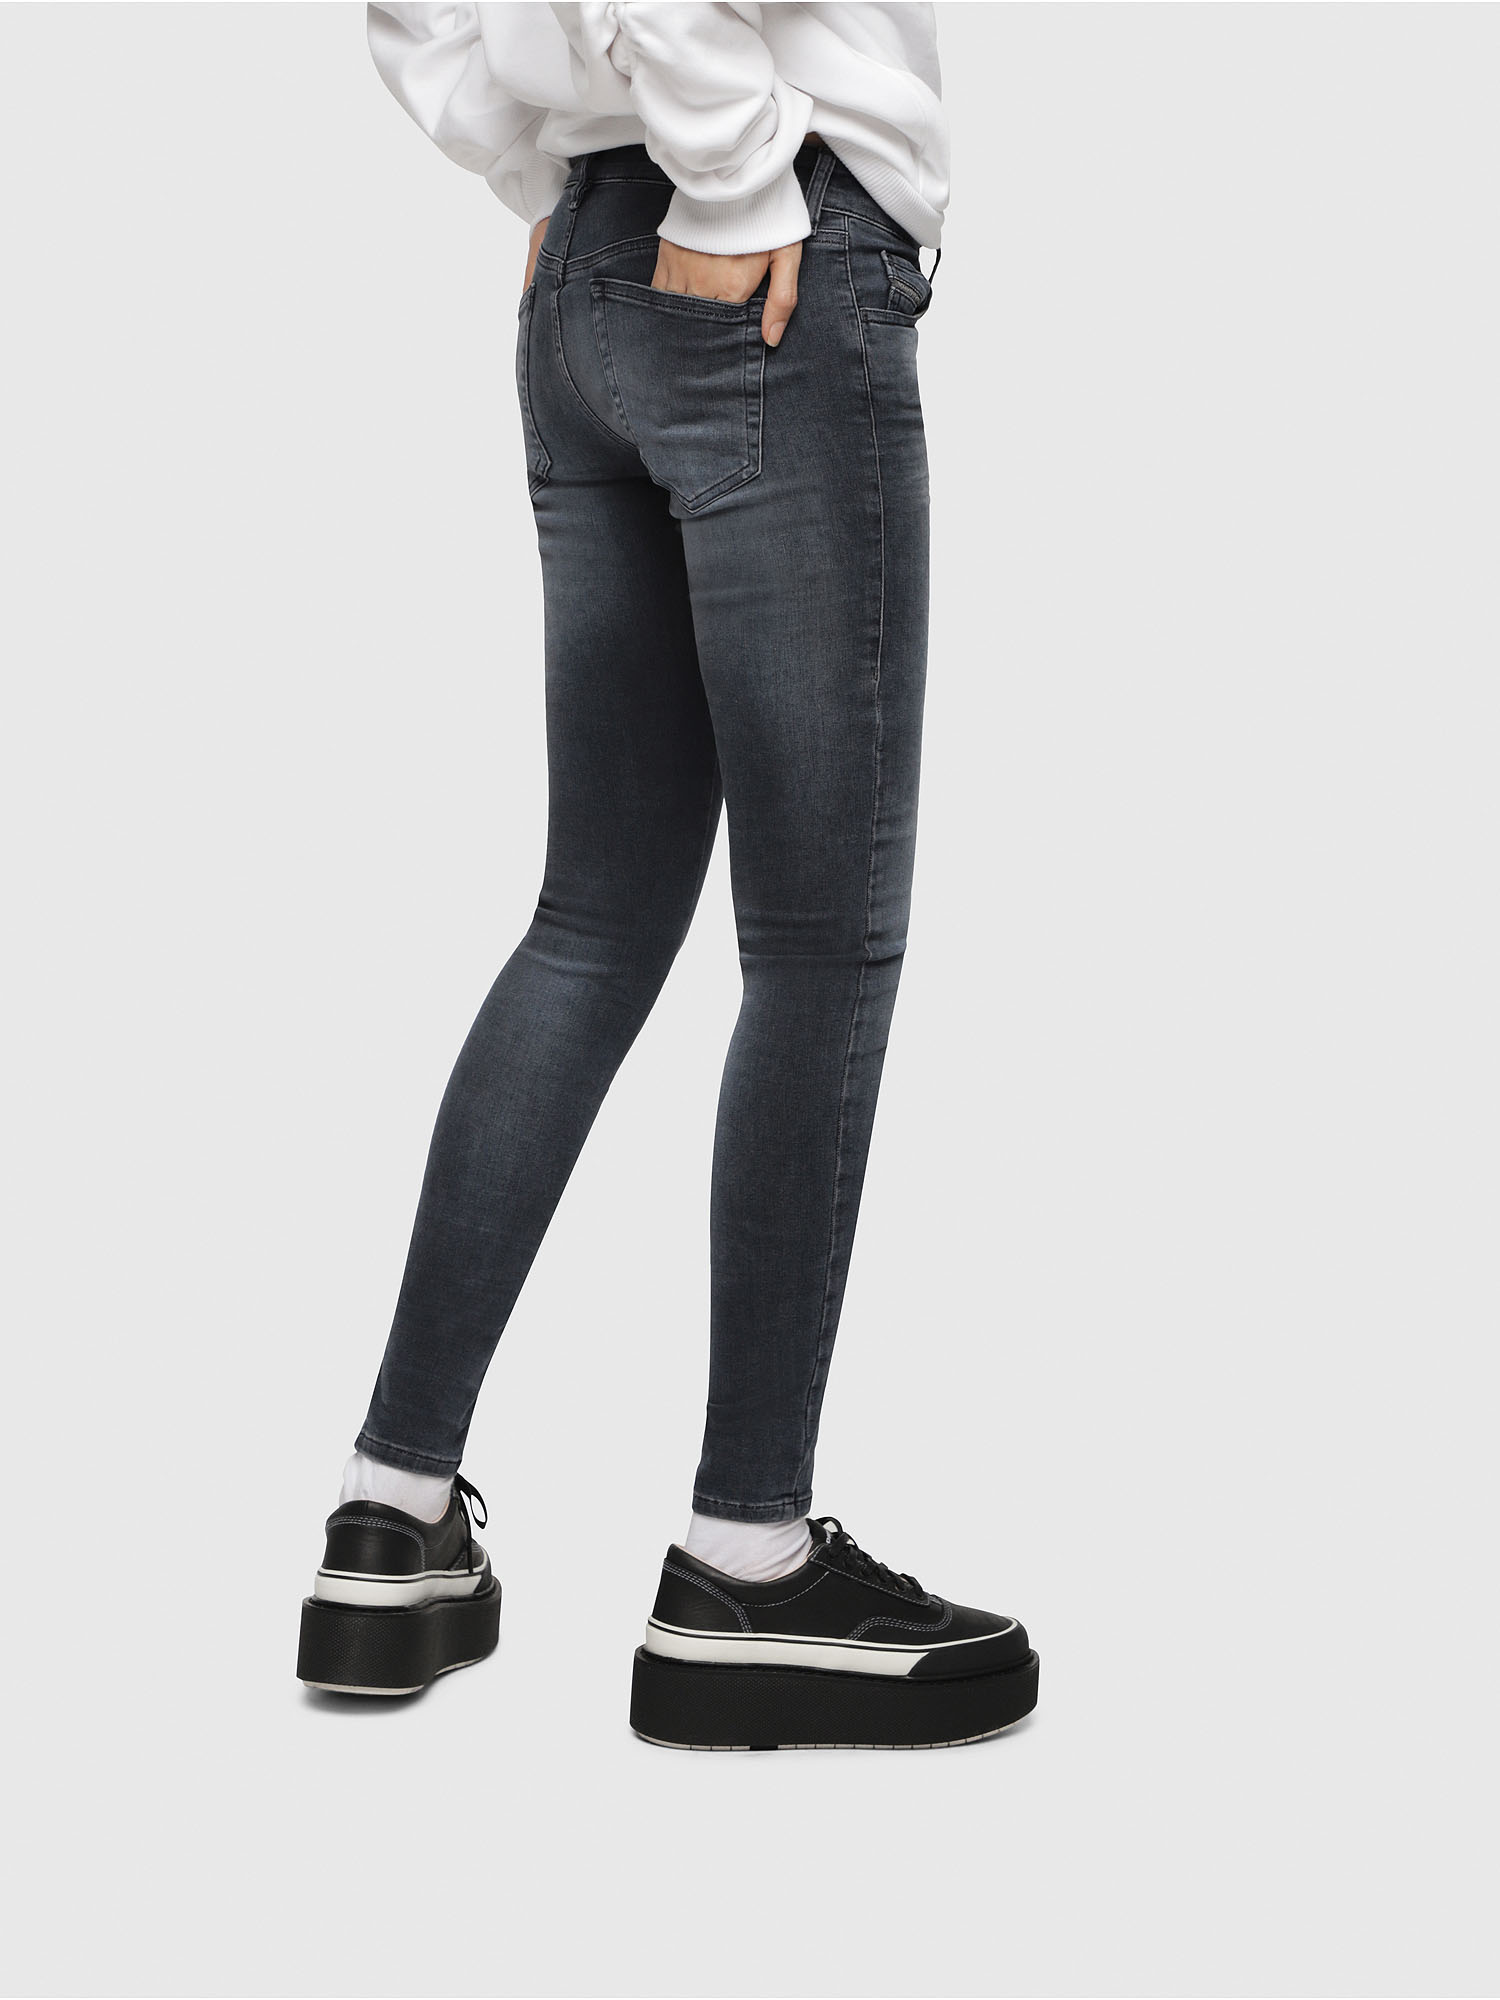 Diesel - Slandy Low 069BT,  - Jeans - Image 3